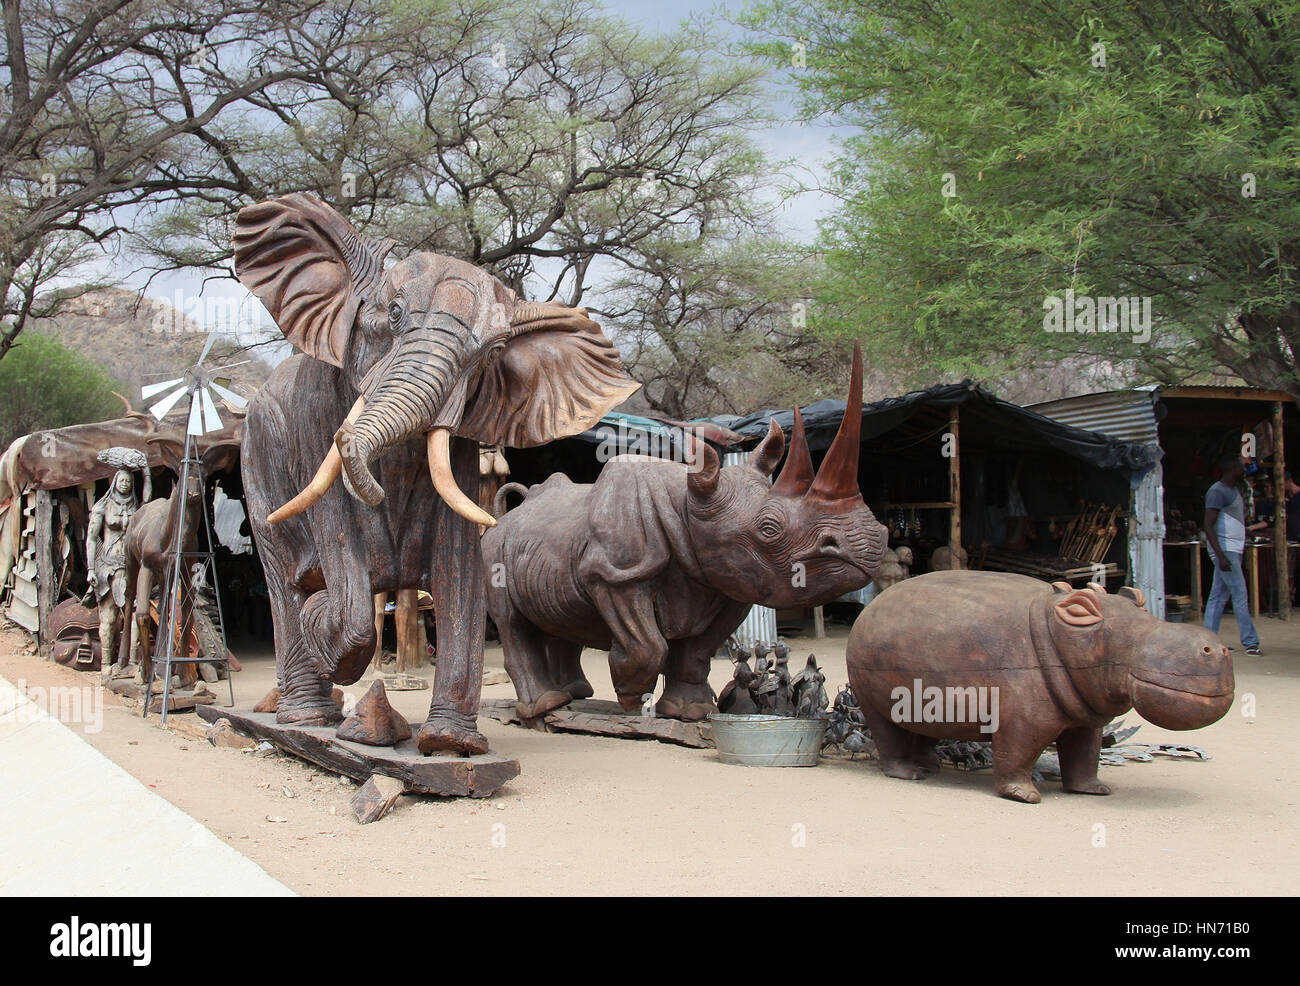 Wood carving centre and craft market at okahandja in